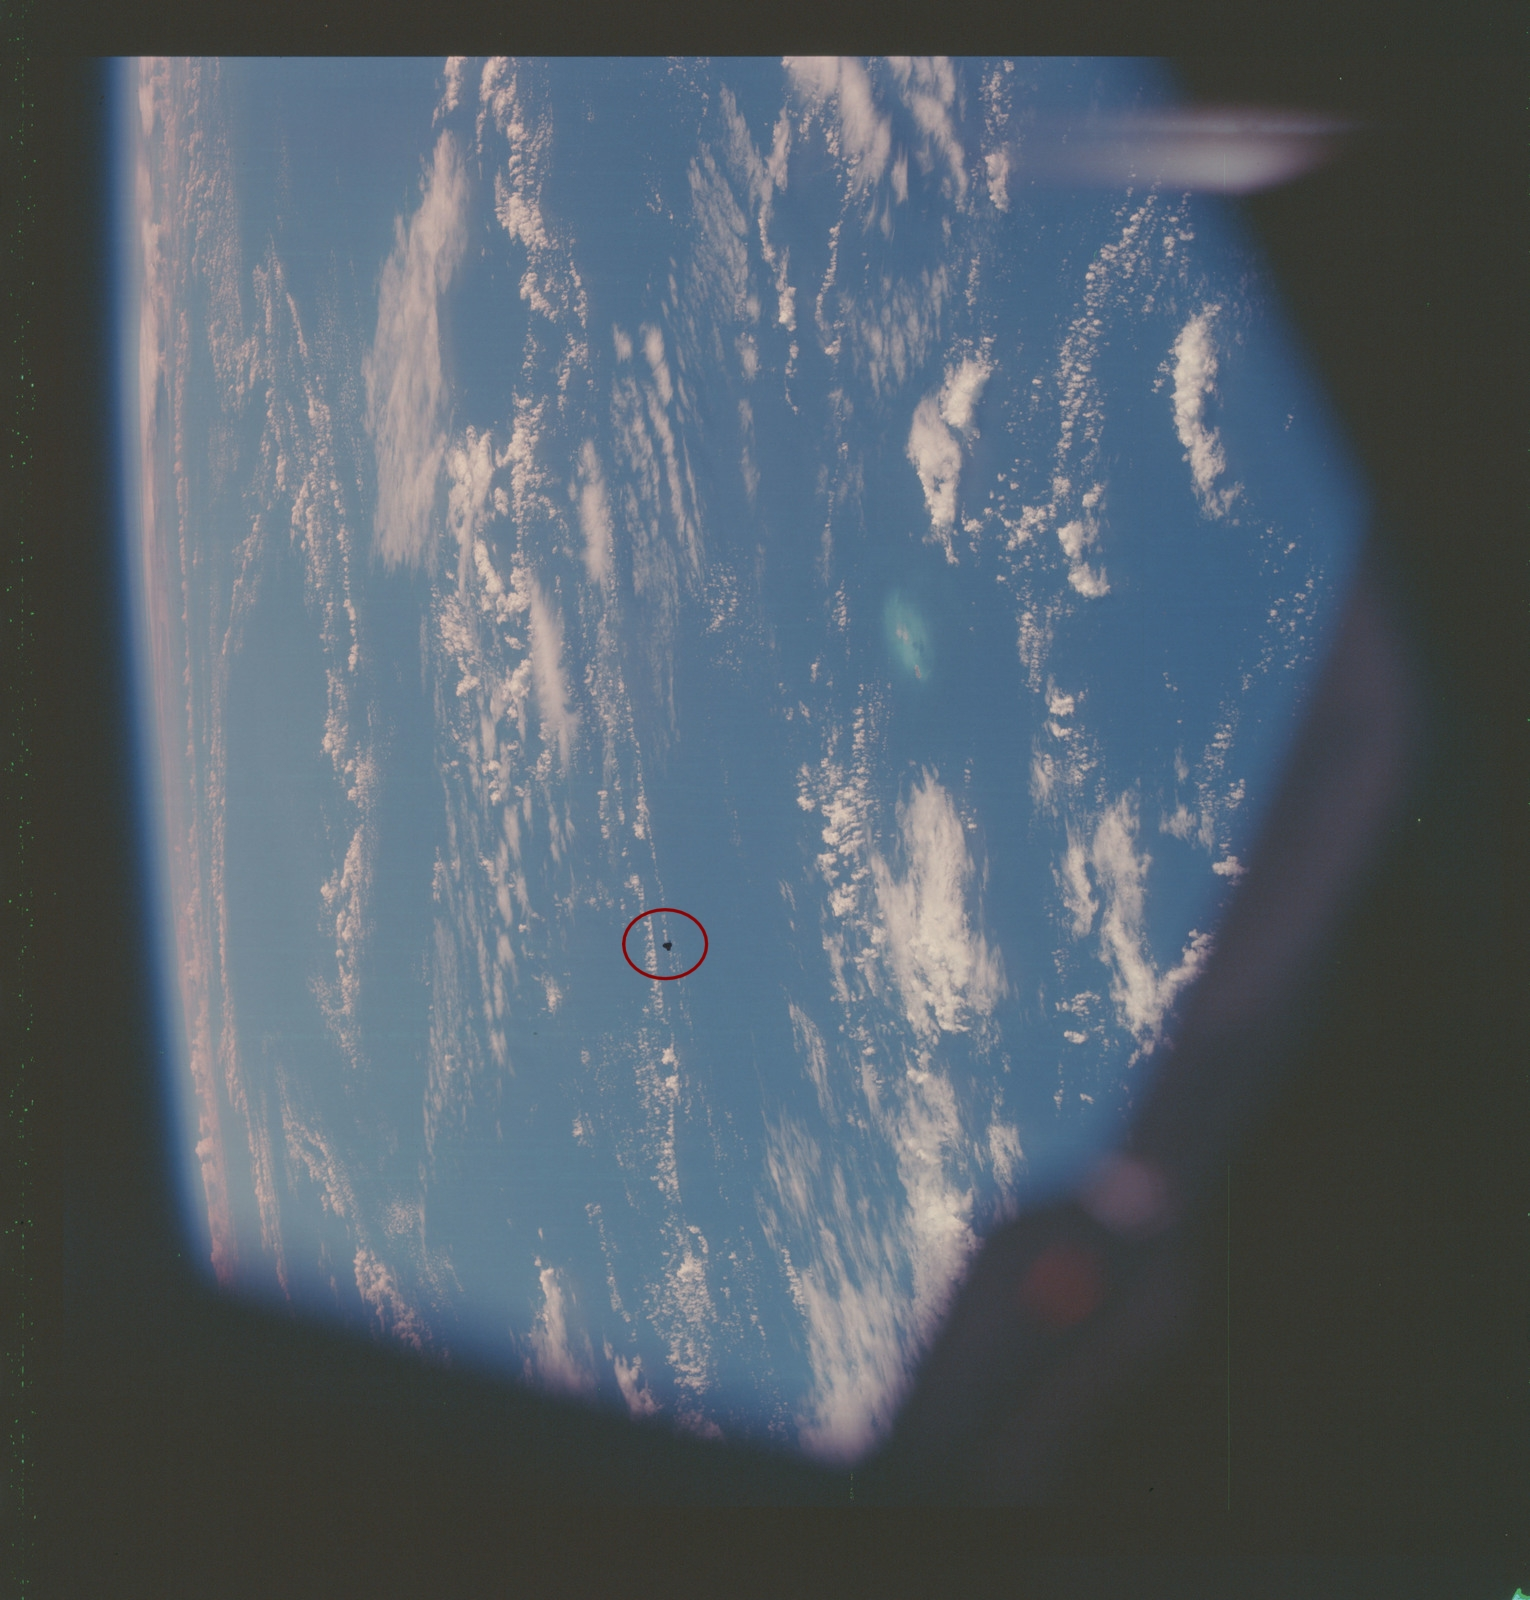 as07-07-1738-apollo-7-apollo-7-mission-gardiners-pinnacles-9838fd-1600-circled.jpg